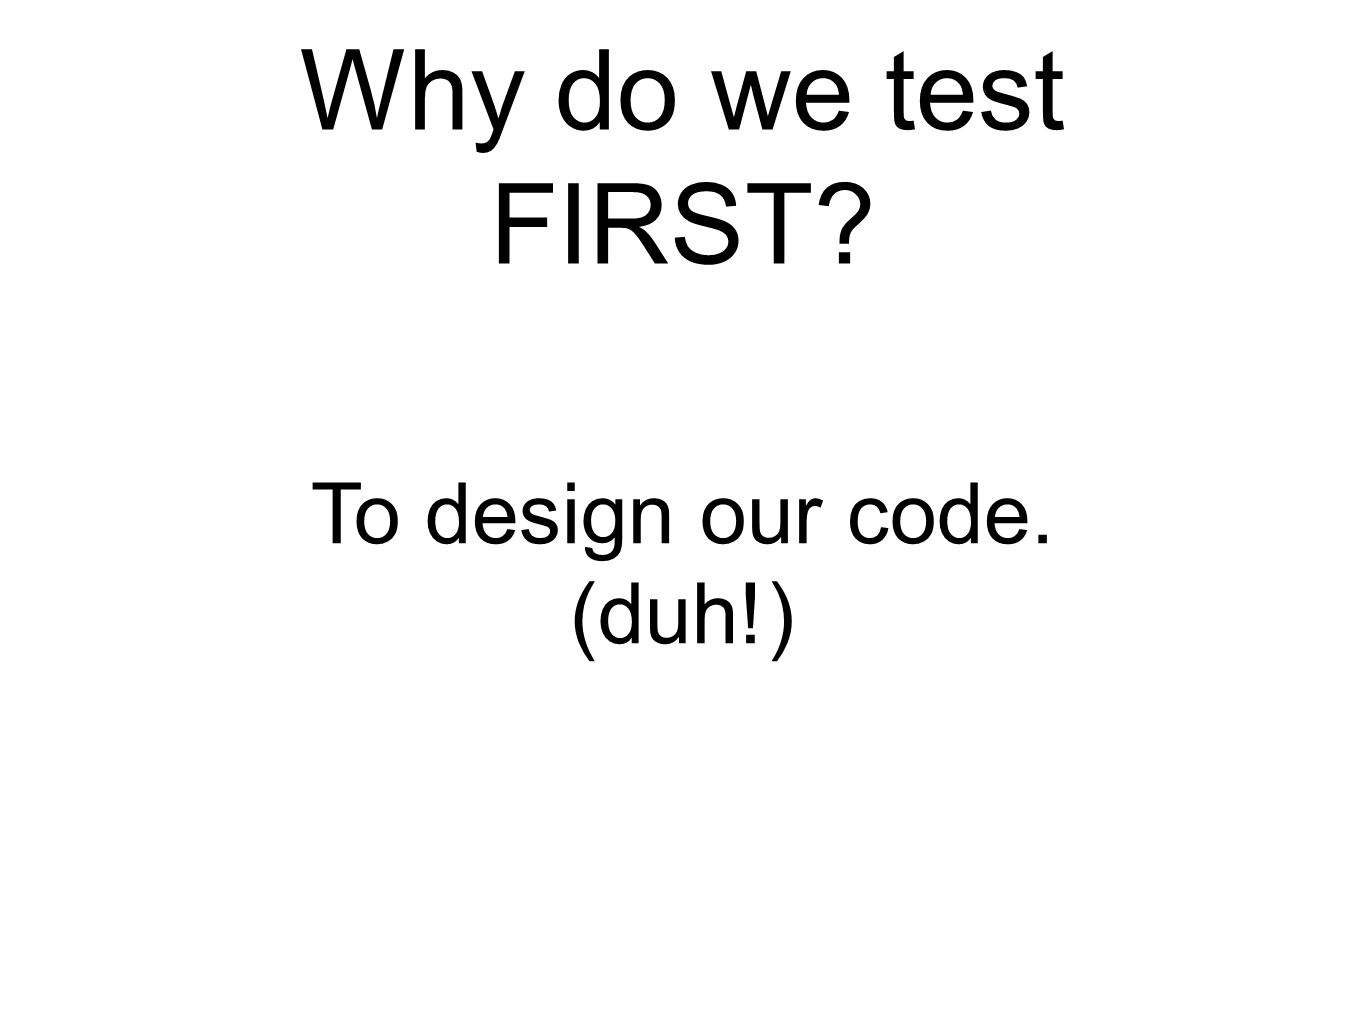 To design our code. (duh!)